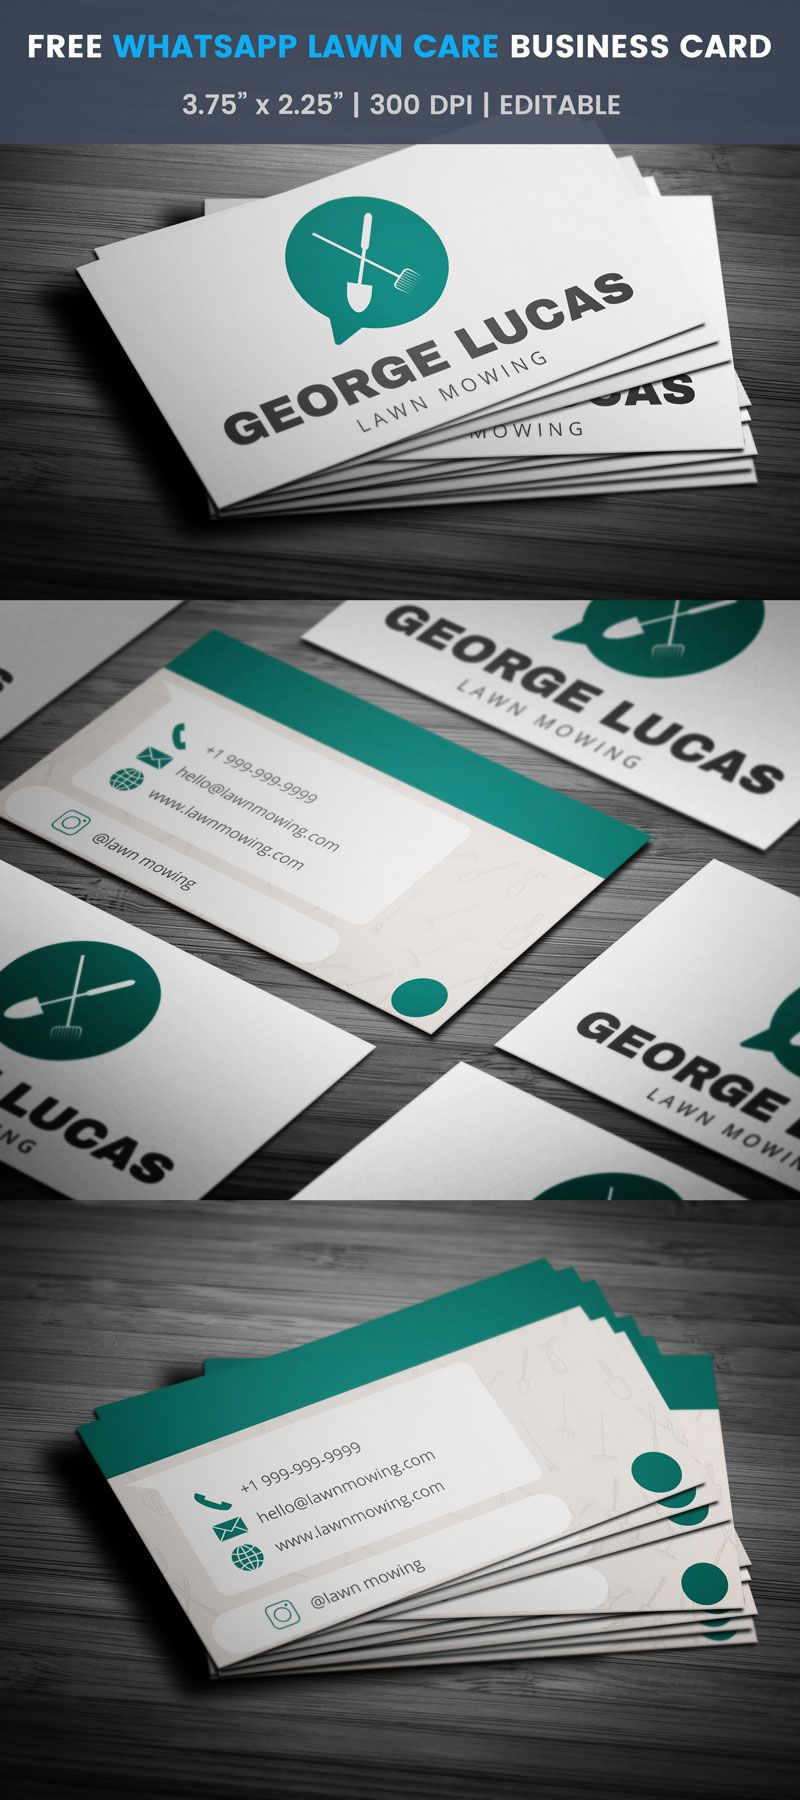 Whatsapp Themed Lawn Care Business Card - Full Preview | Free ...